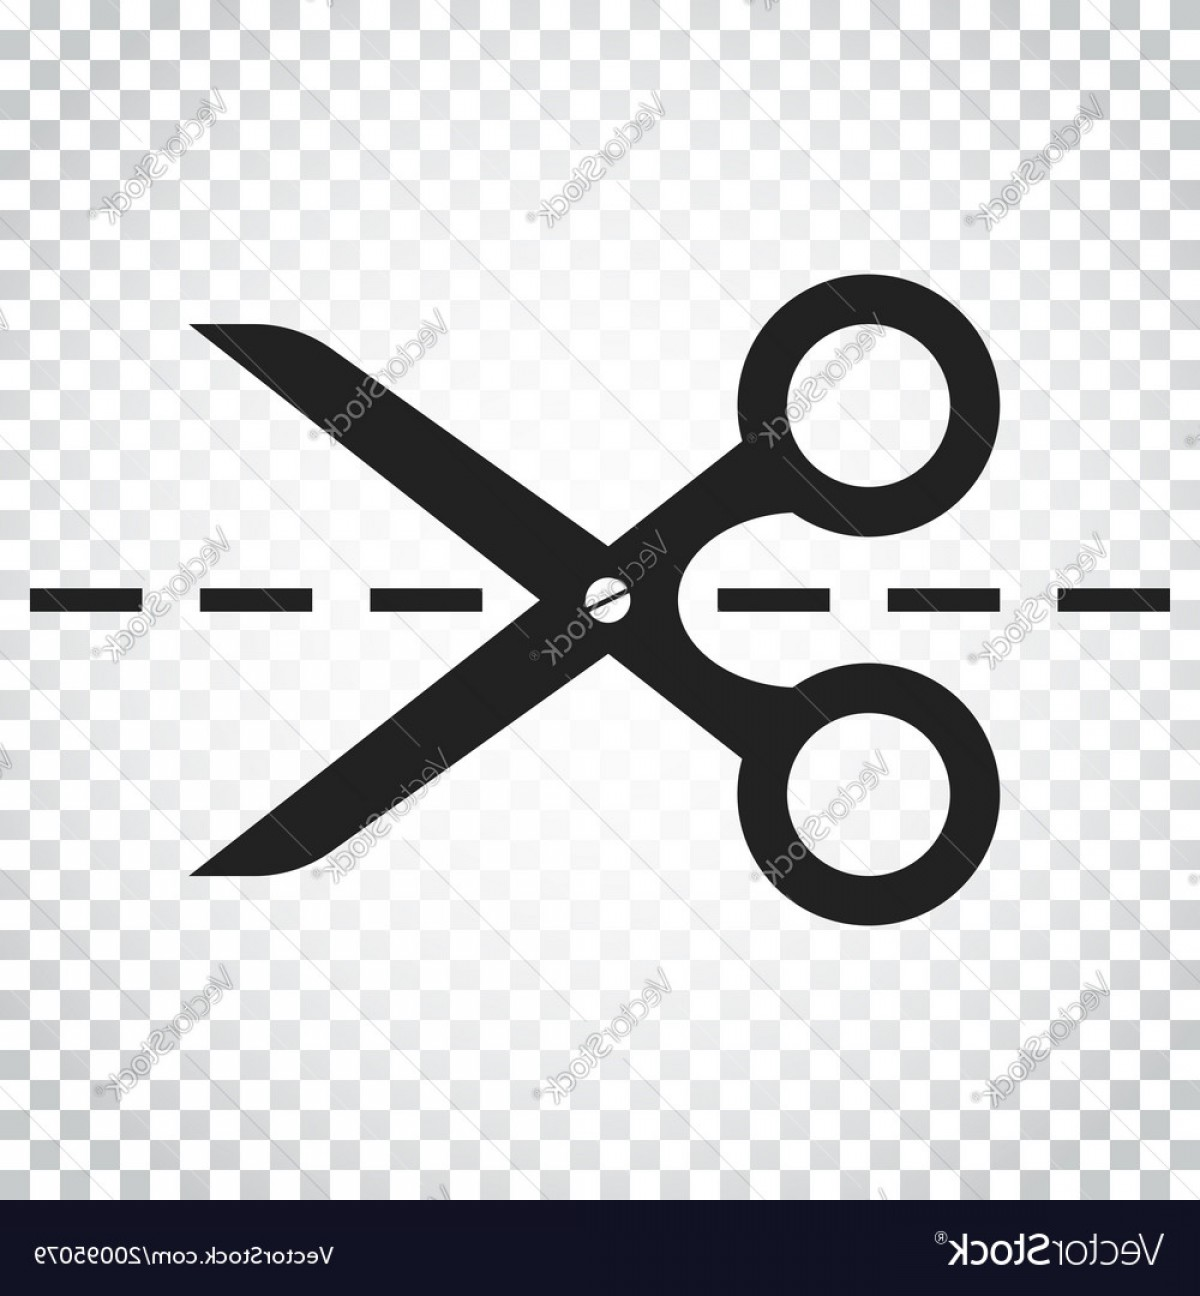 Cut Symbol Vector: Scissors Icon With Cut Line Scissor Simple Vector